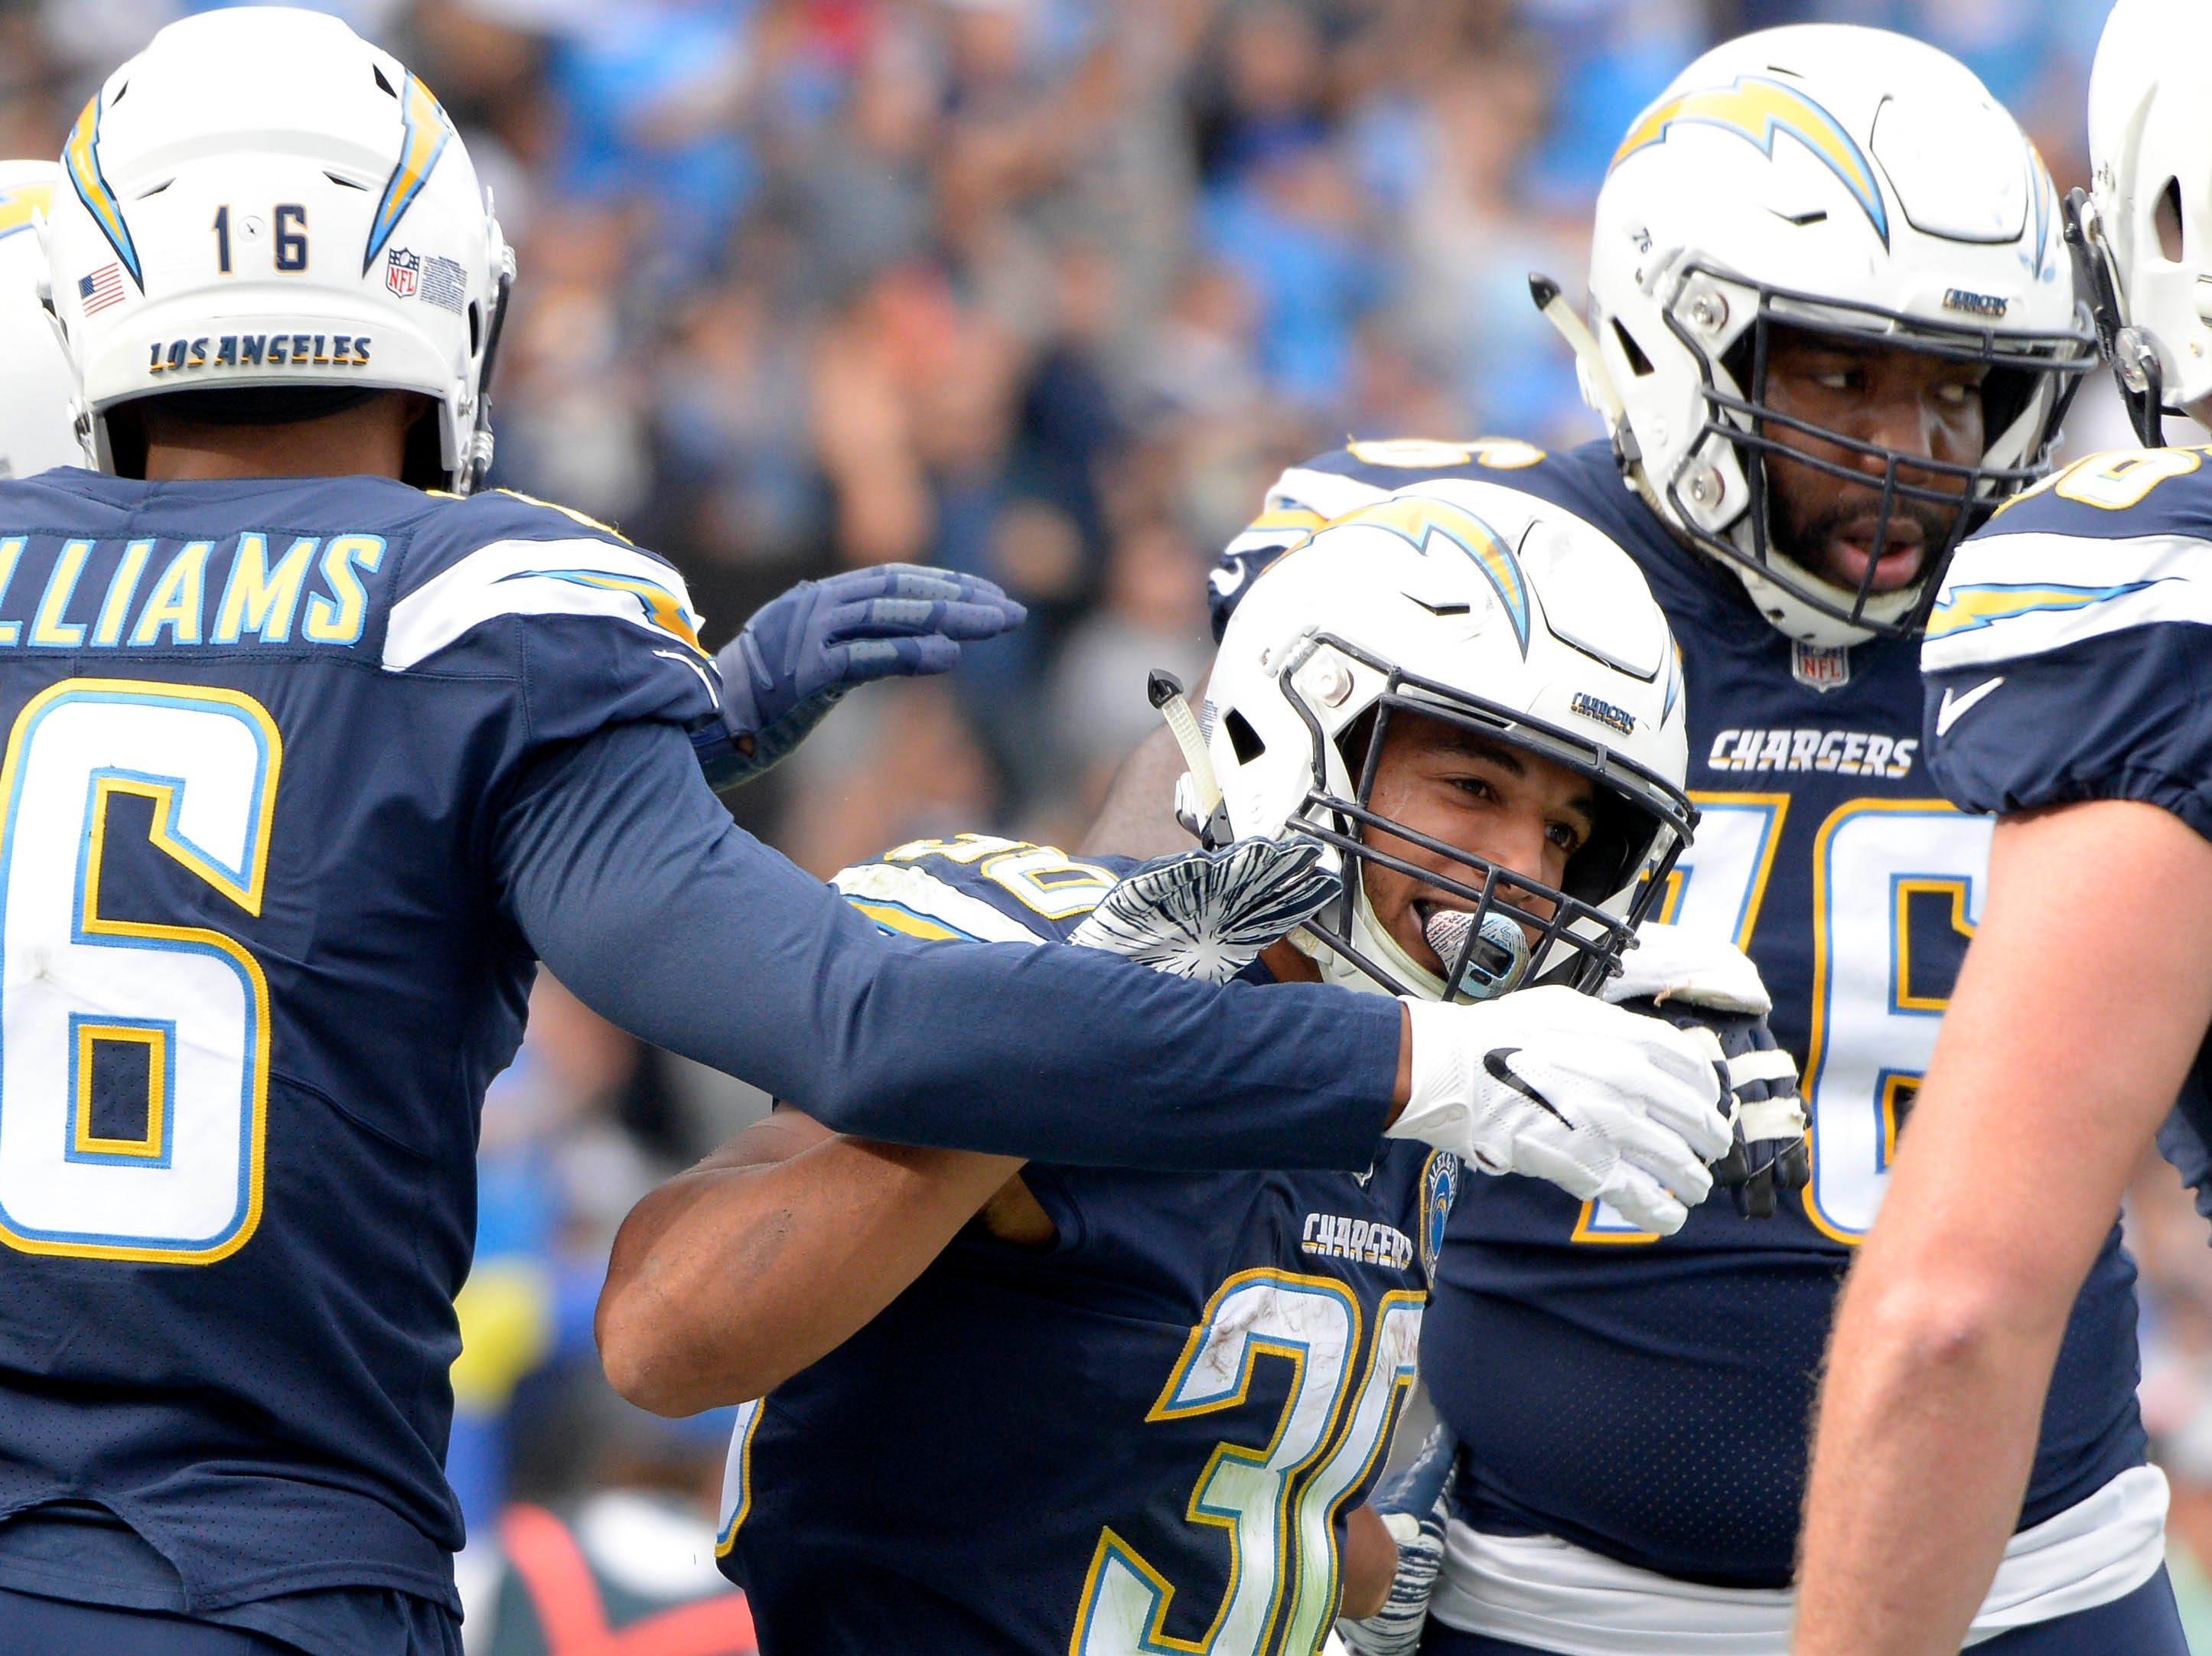 Chargers running back Austin Ekeler is congratulated after a second quarter touchdown against the Bengals.